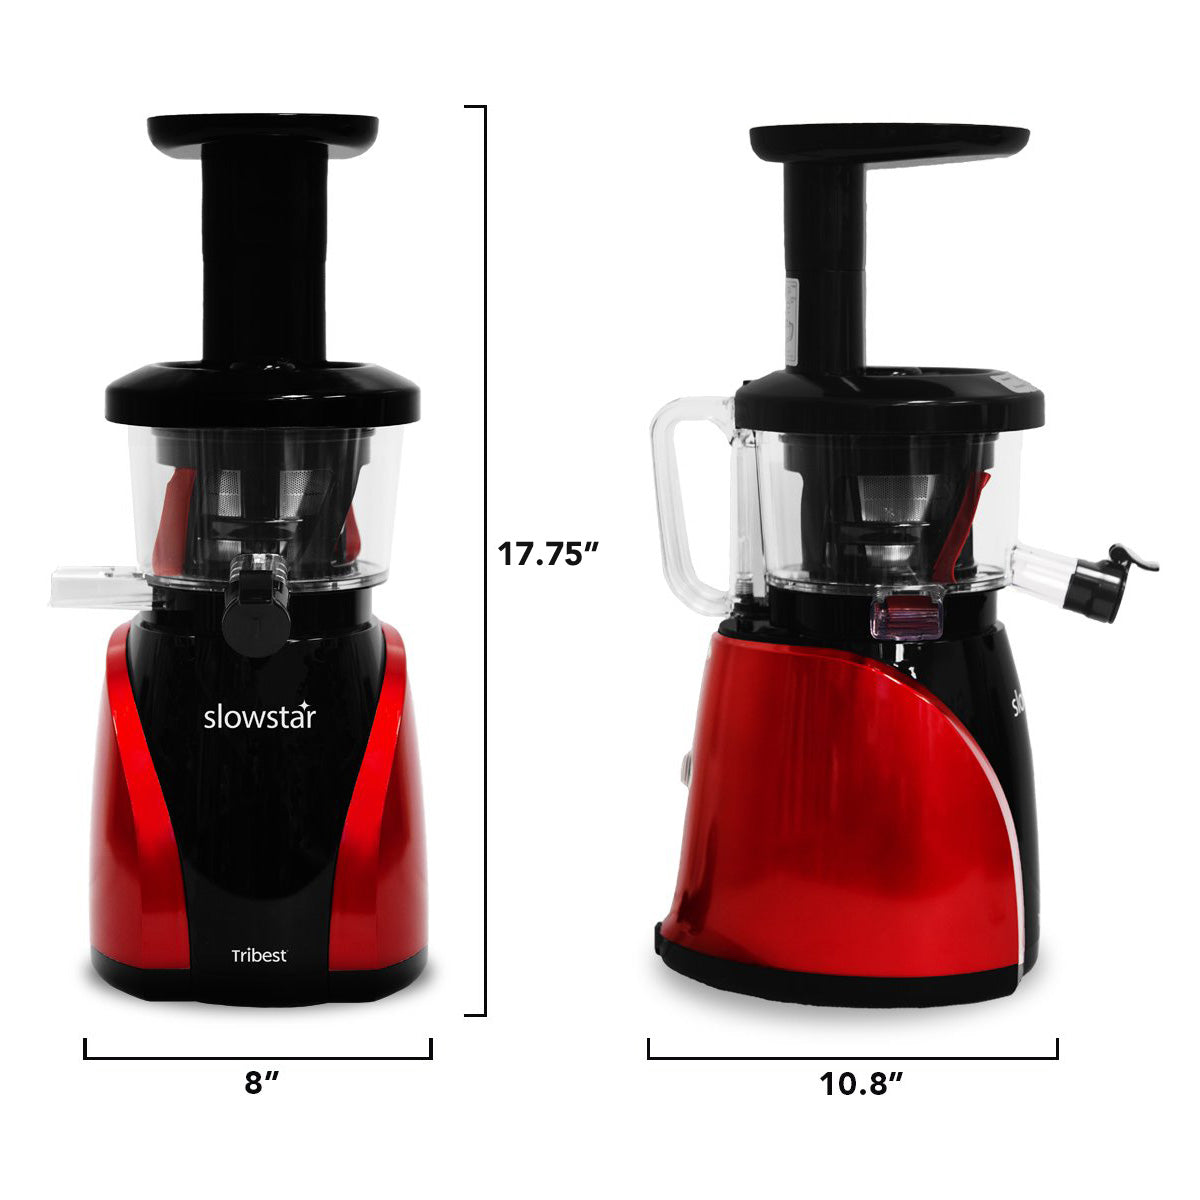 Slowstar Vertical Slow Juicer & Mincer in Red SW-2000-B - Size 8